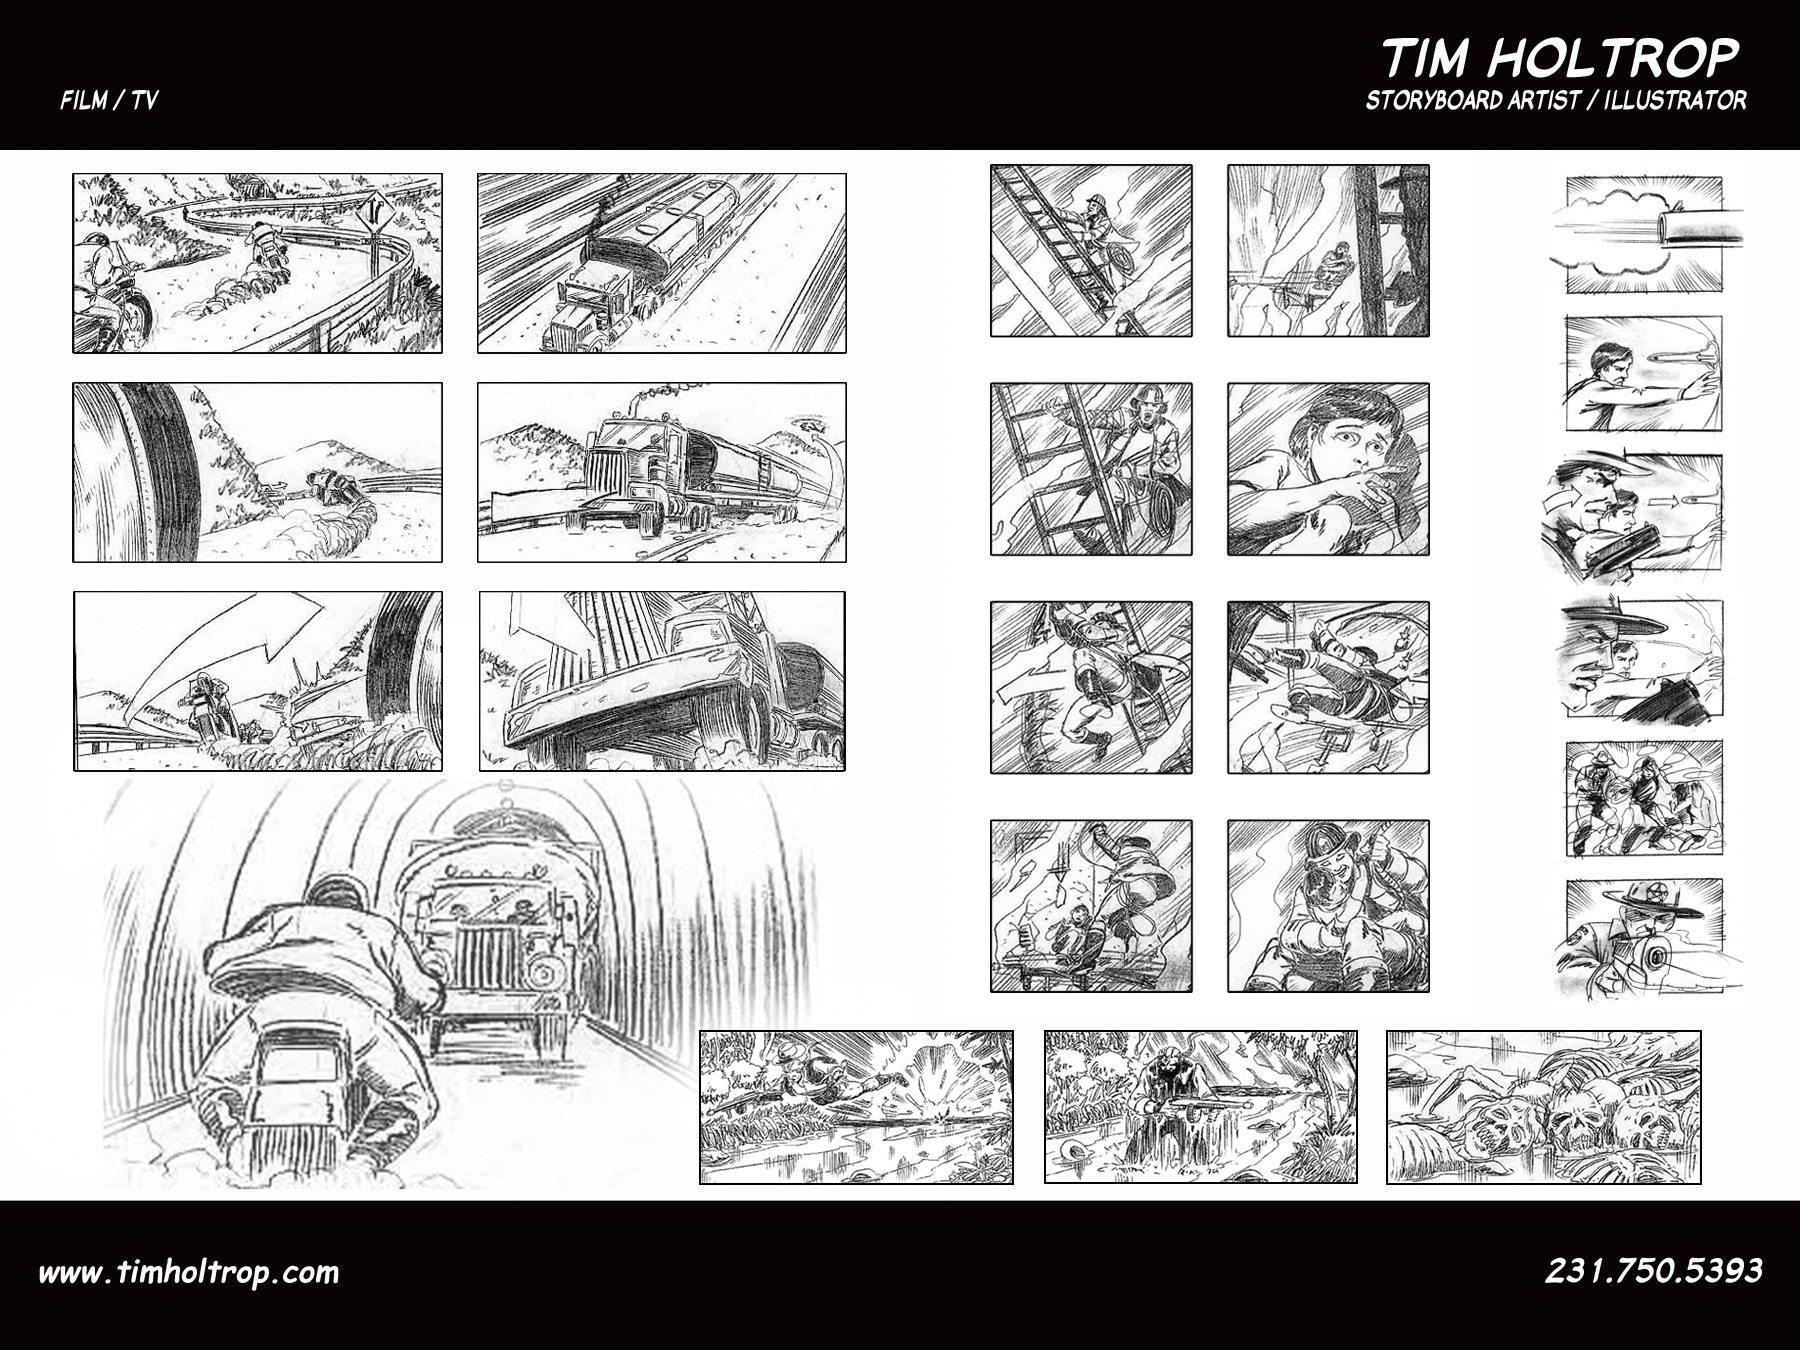 Art Samples By Storyboard Artist, Tim Holtrop    Film And Television